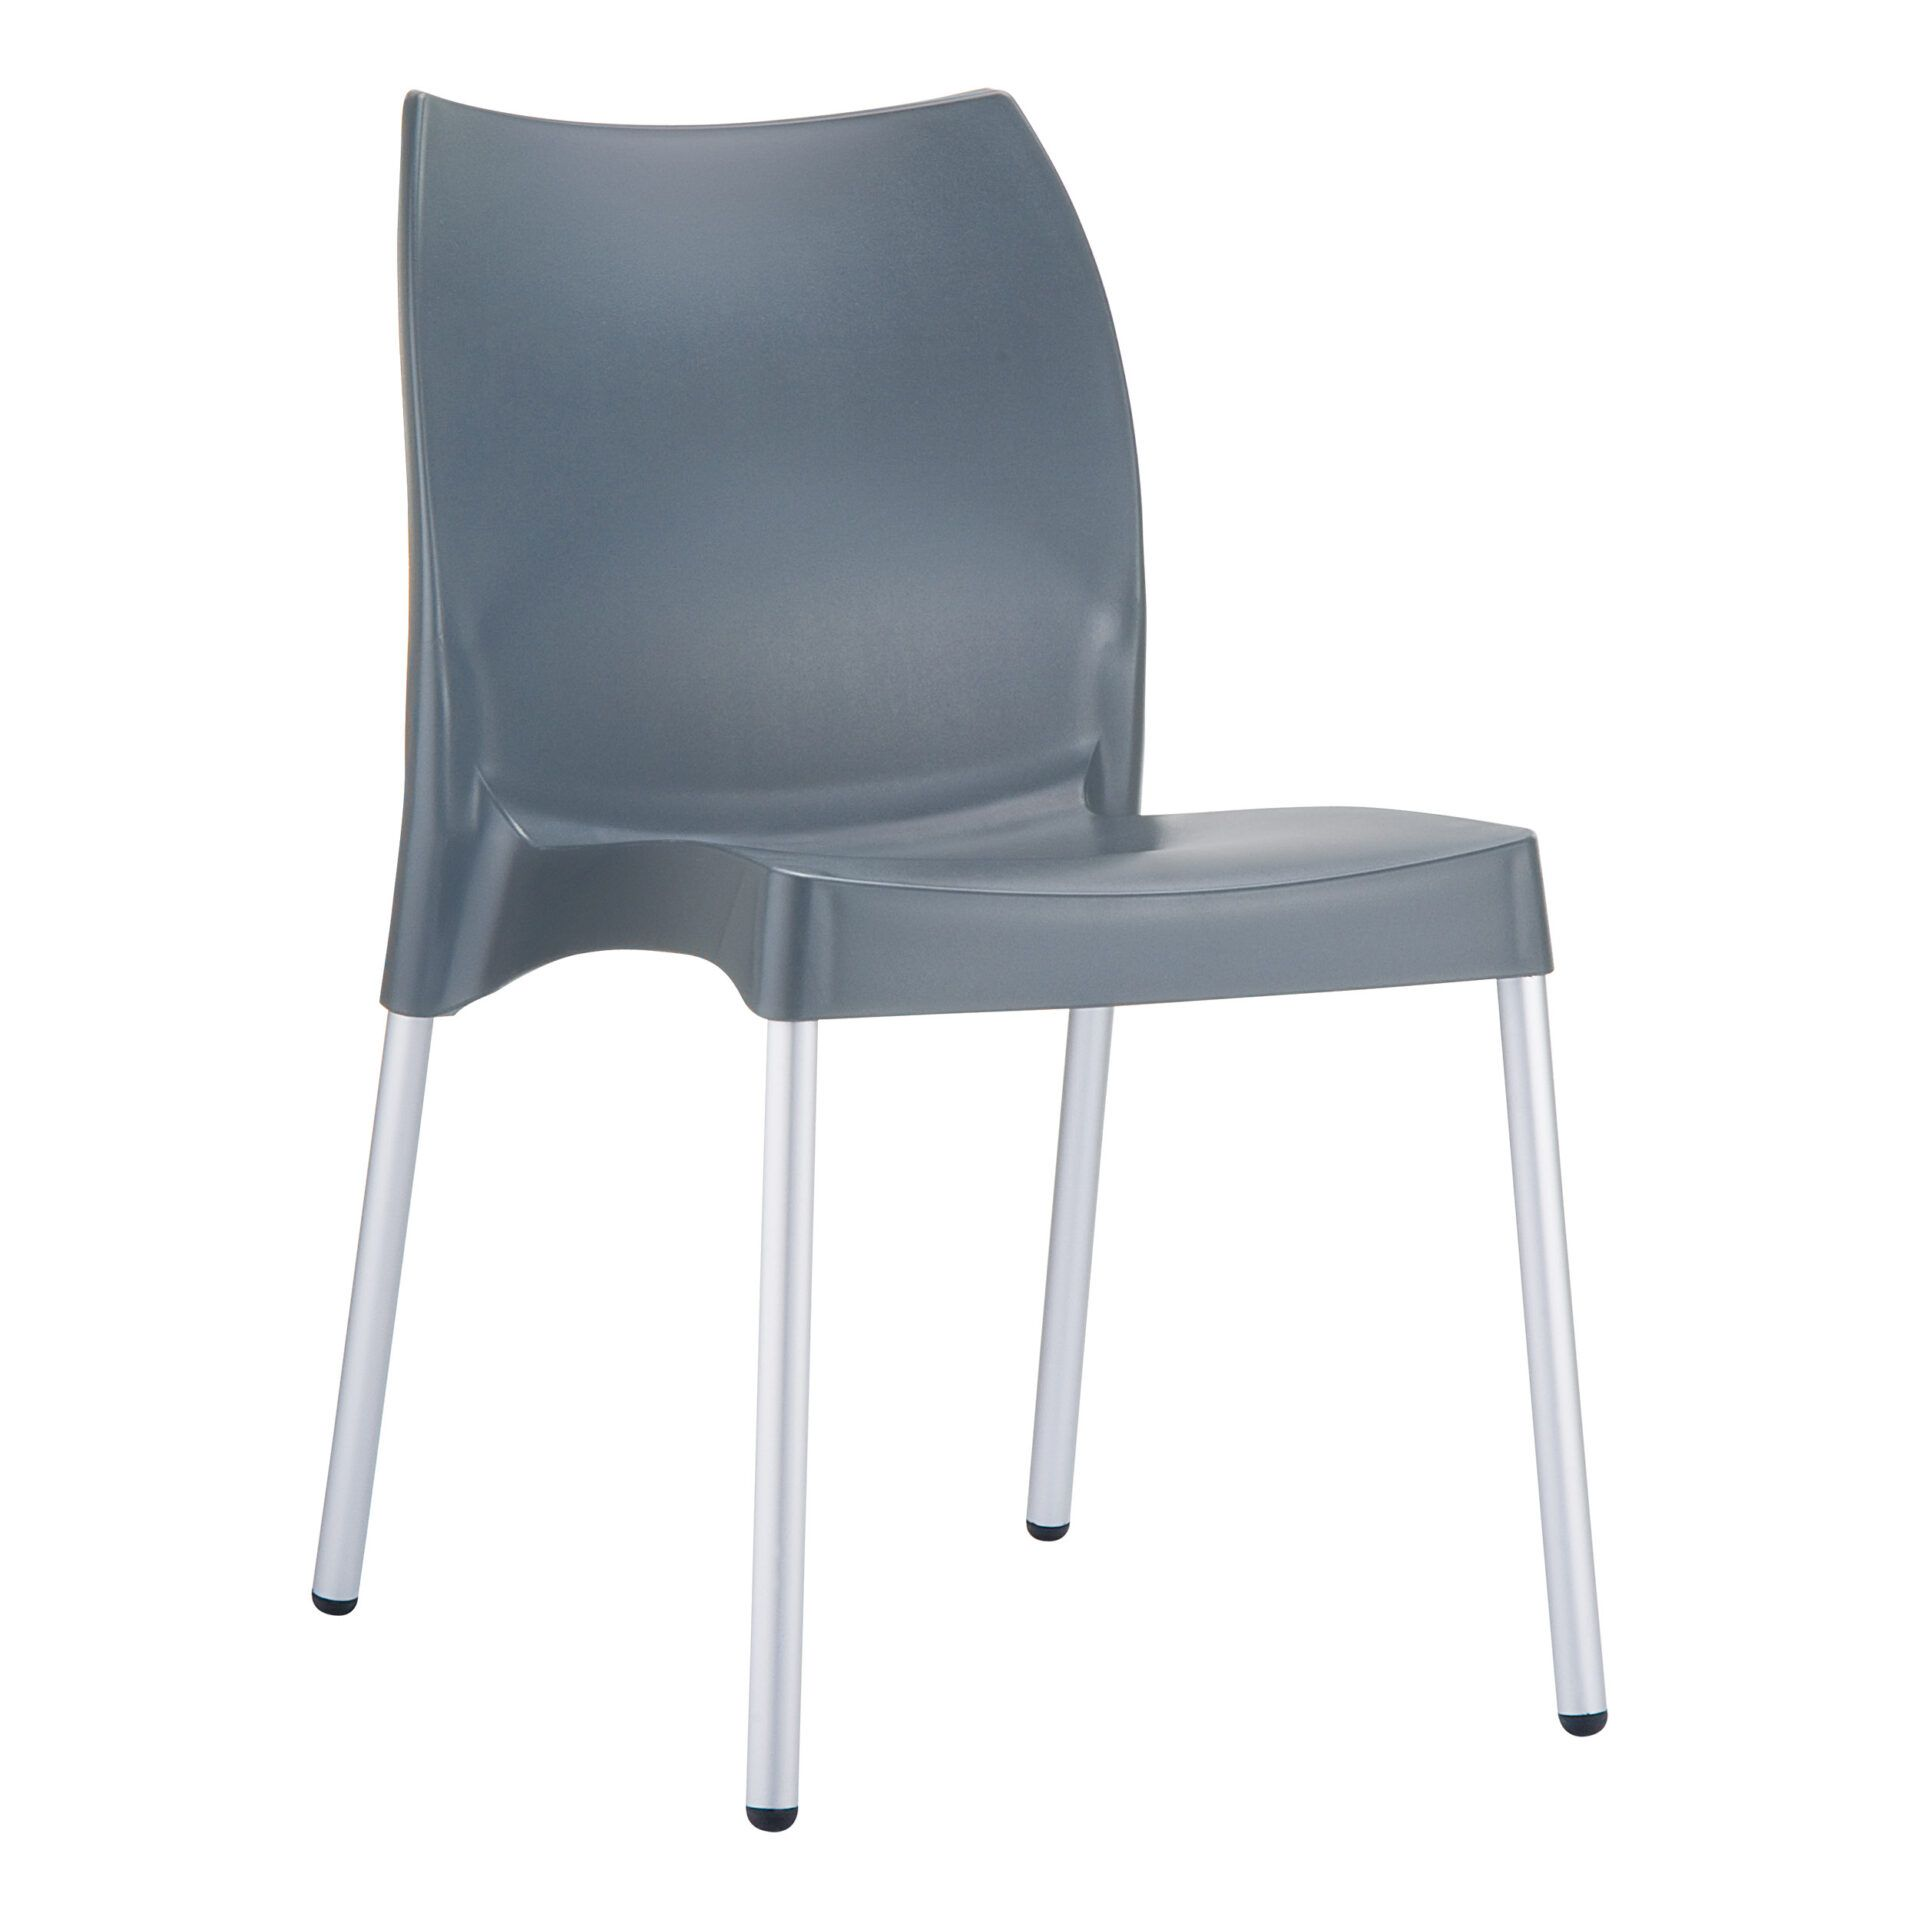 commercial outdoor hospitality seating vita chair darkgrey front side